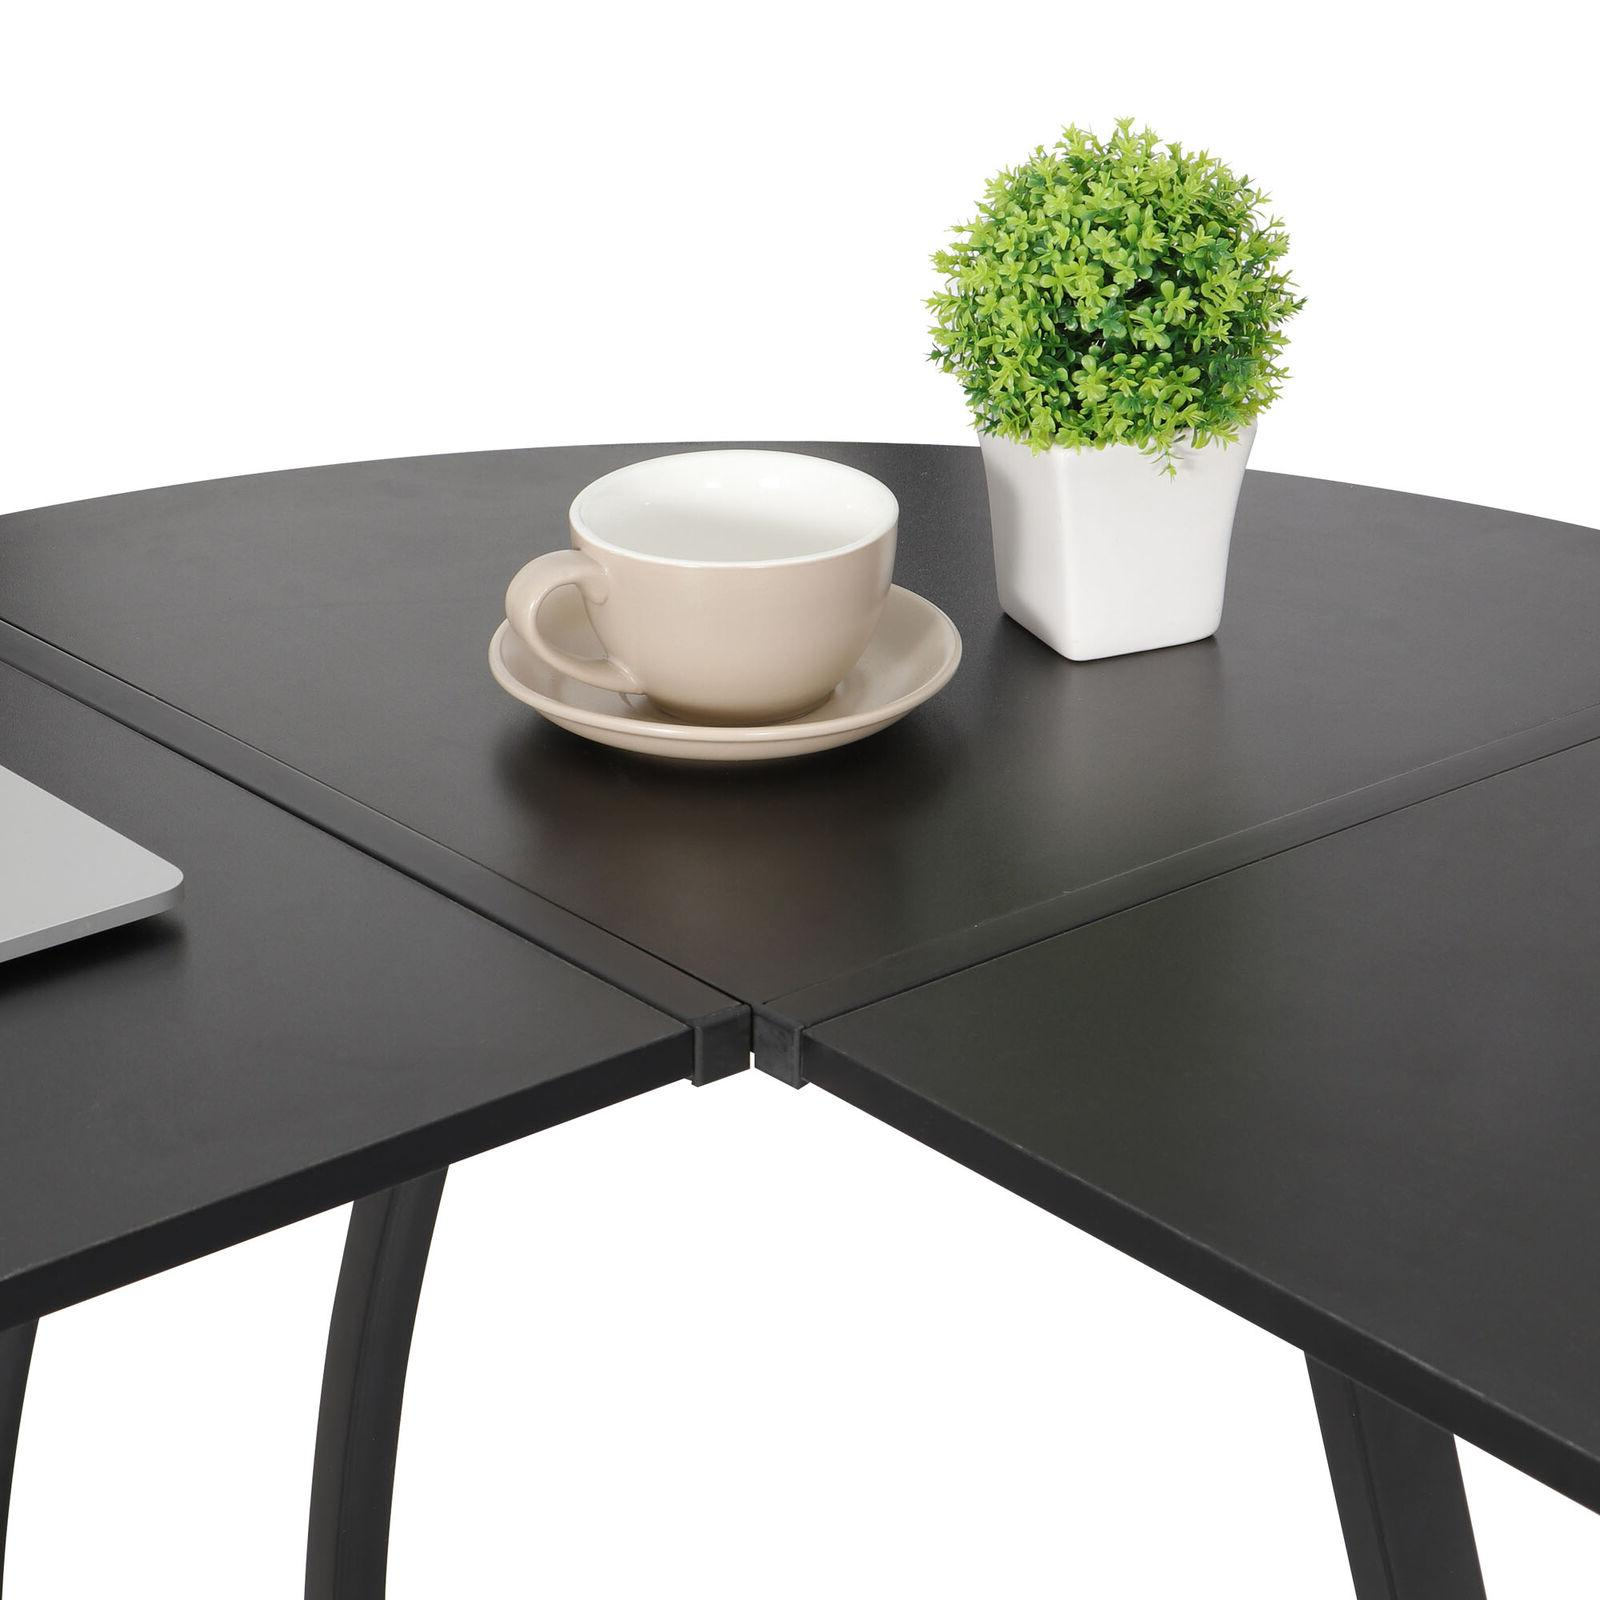 L-Shaped Corner Desk Gaming Table Writting Table Home